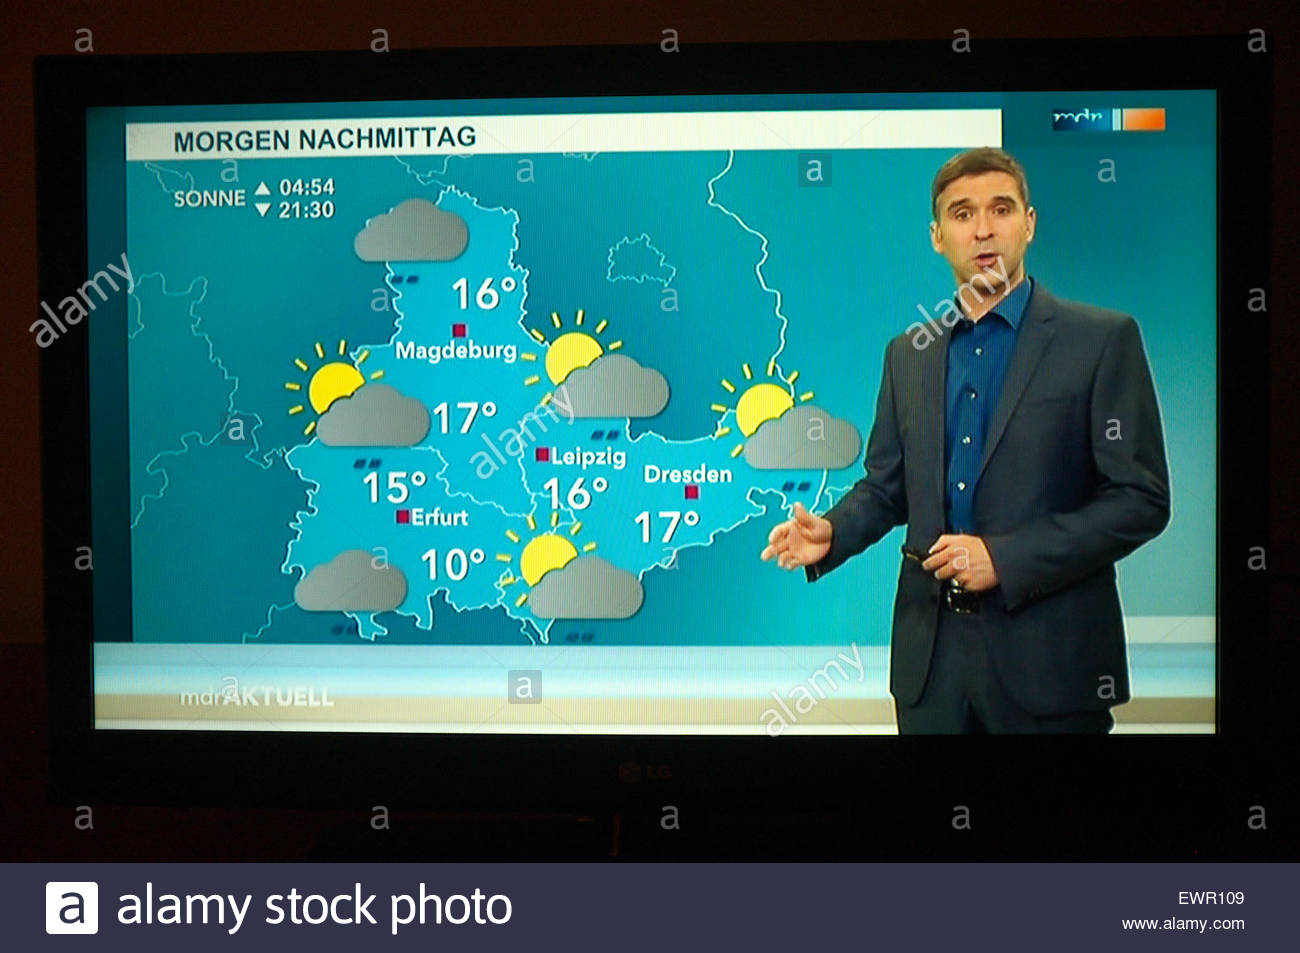 Television picture - presenter giving a weather forecast for part of the eastern side of Germany. - Stock Image